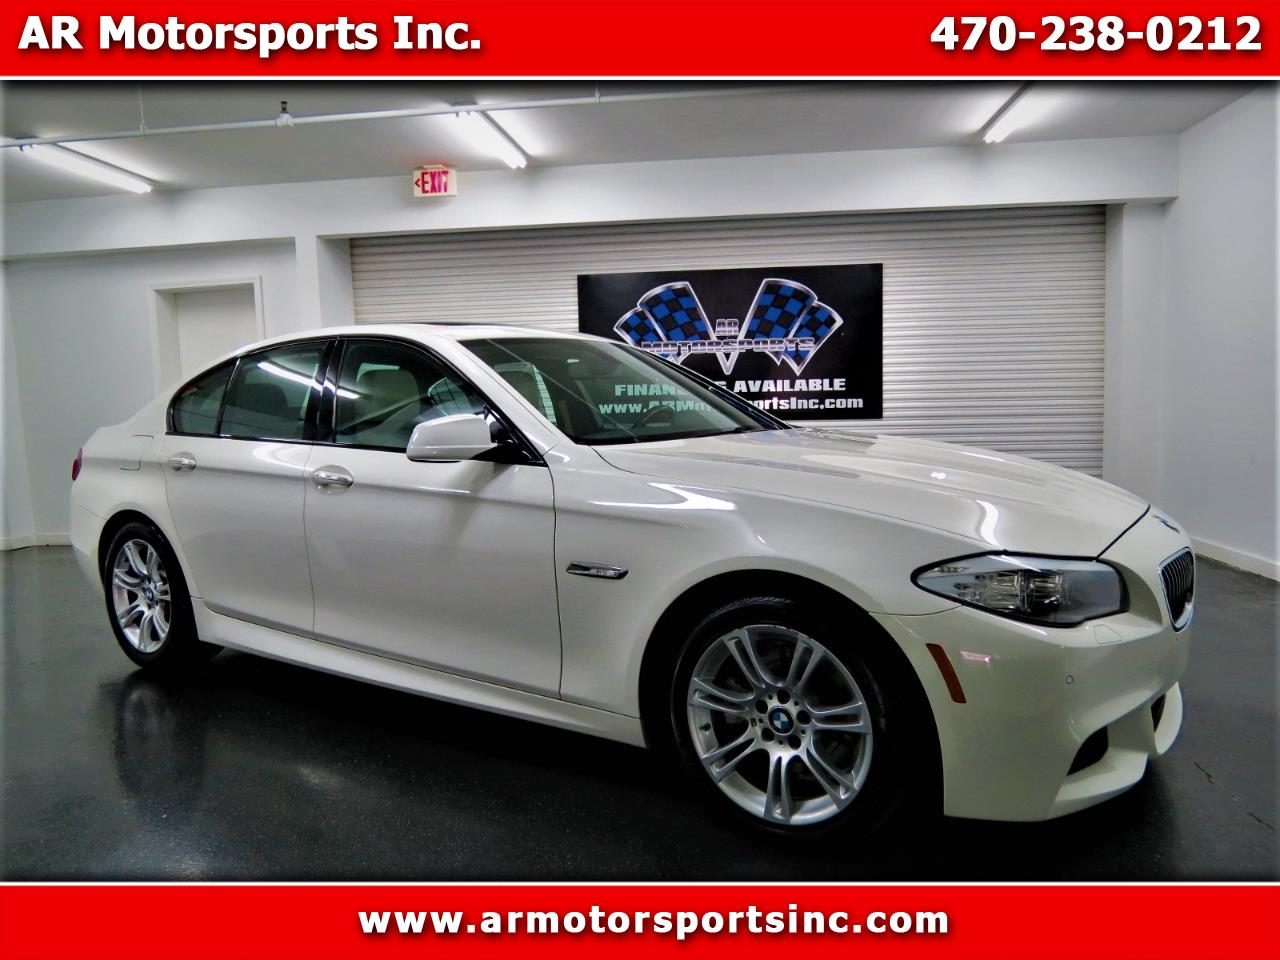 2013 BMW 5-Series 528i with M pkg.